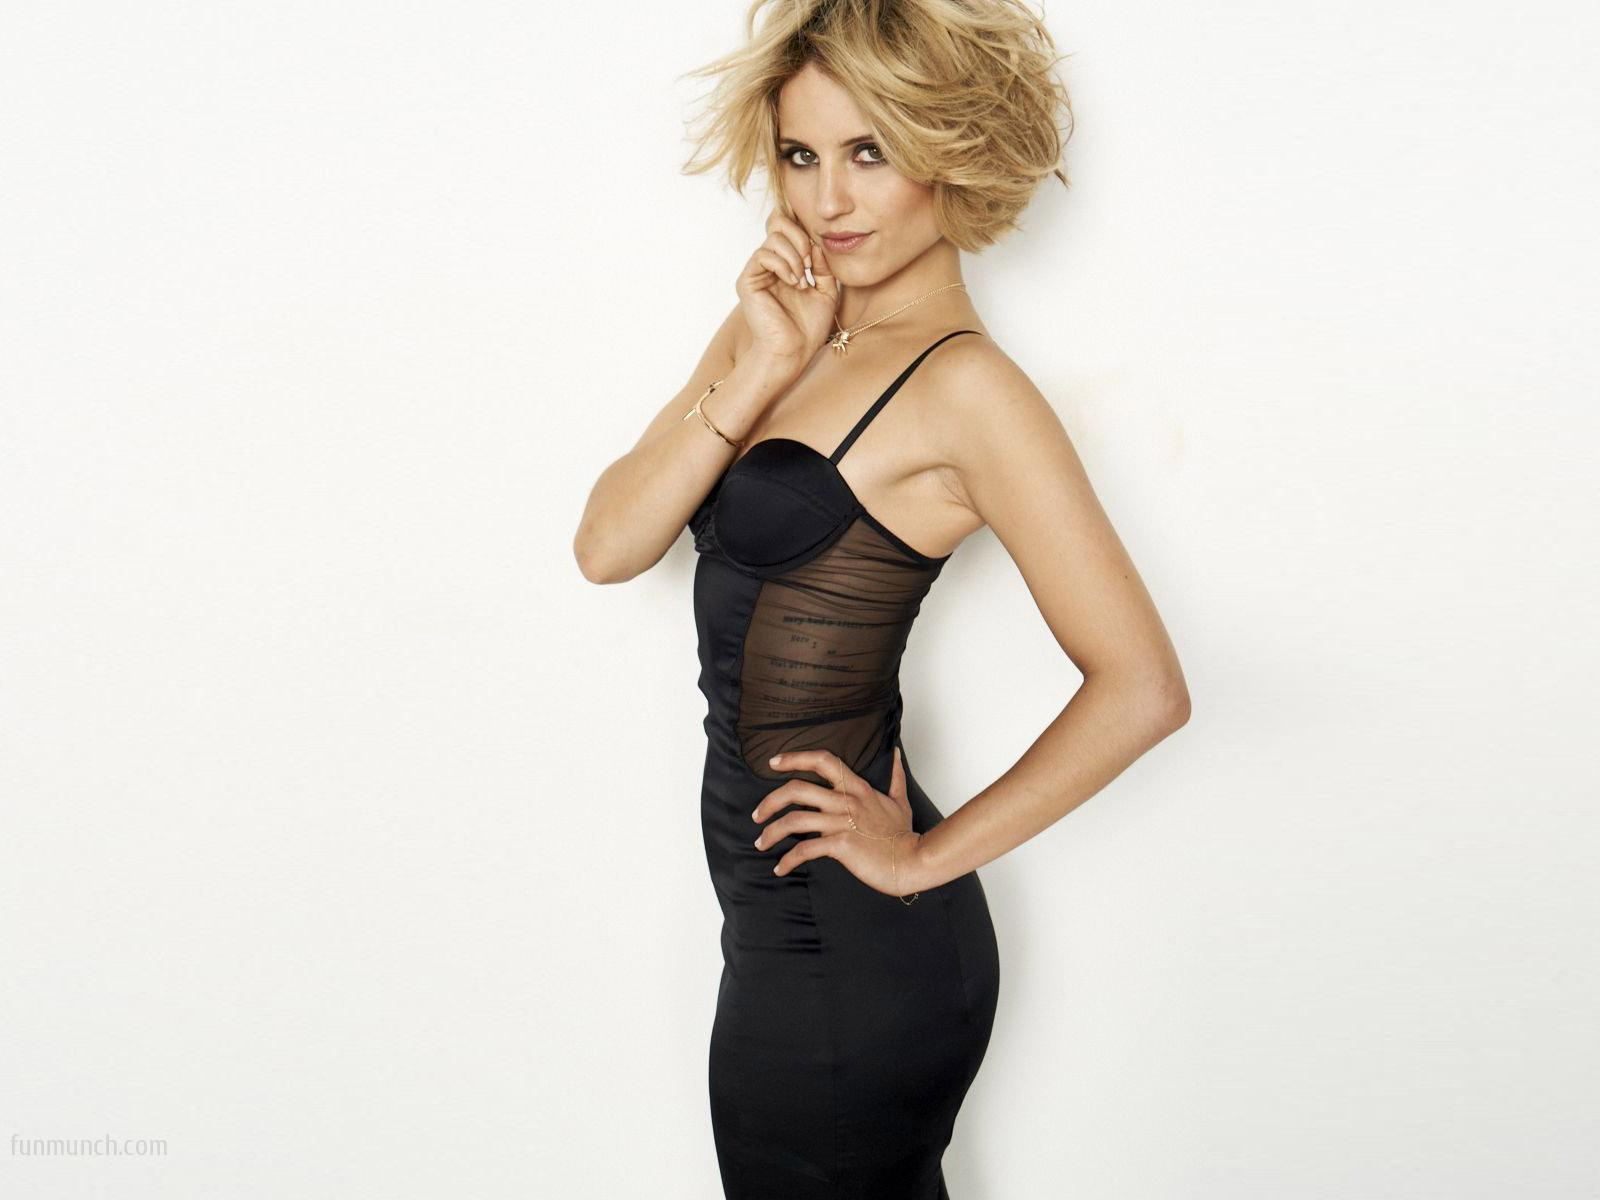 Glee's Sexiest: Diana Agron – So Sexy for My Blog